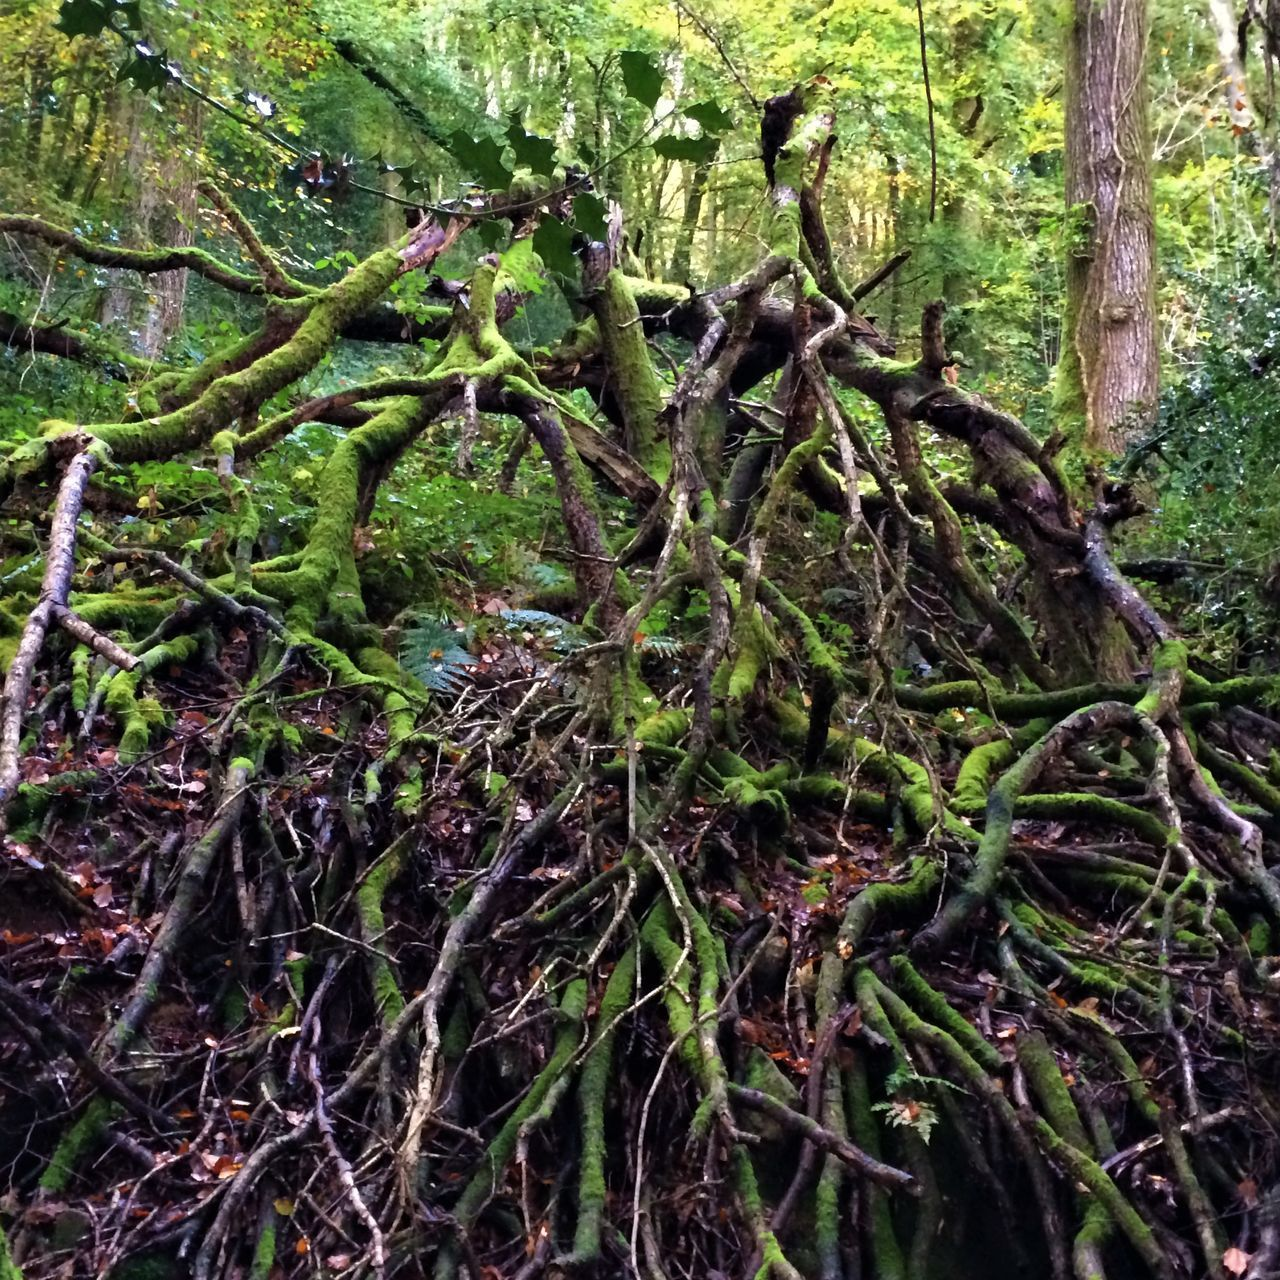 Beauty In Nature Branch Broken Tree Close-up Day Forest Green Color Growth Moss Nature No People Outdoors Tranquility Tree